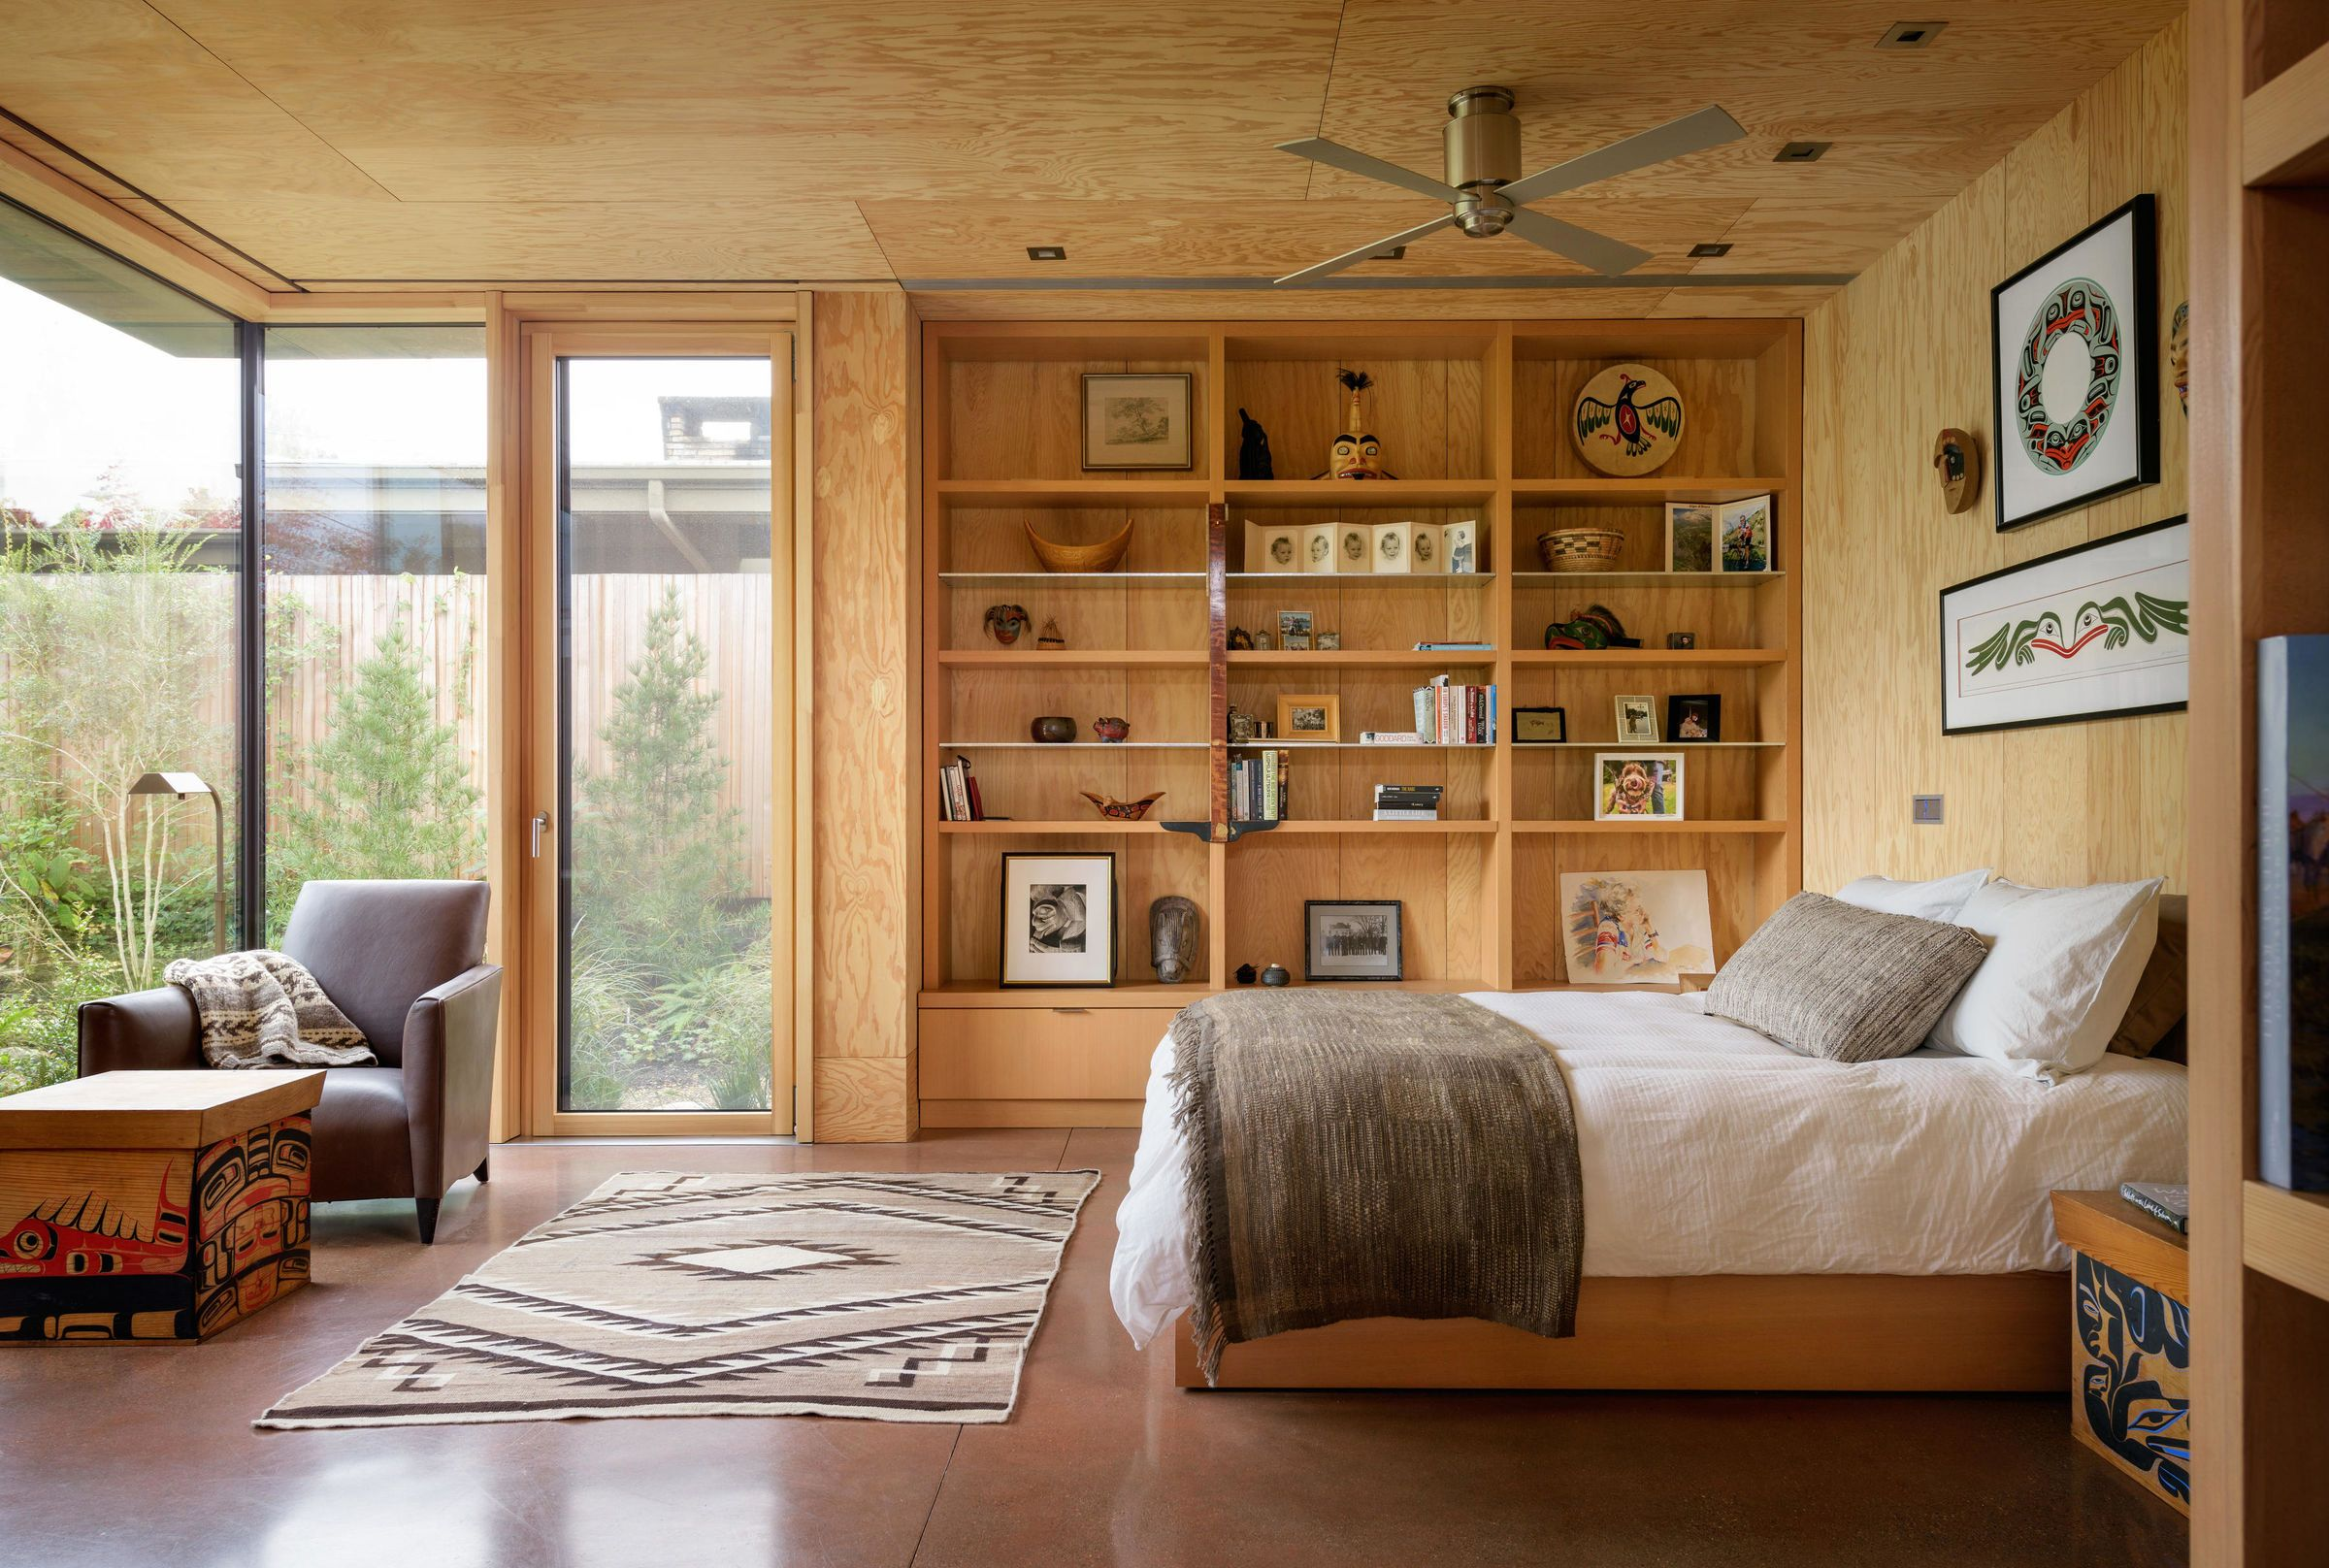 City Cabin Home, Shelves in bedroom, Mid century house